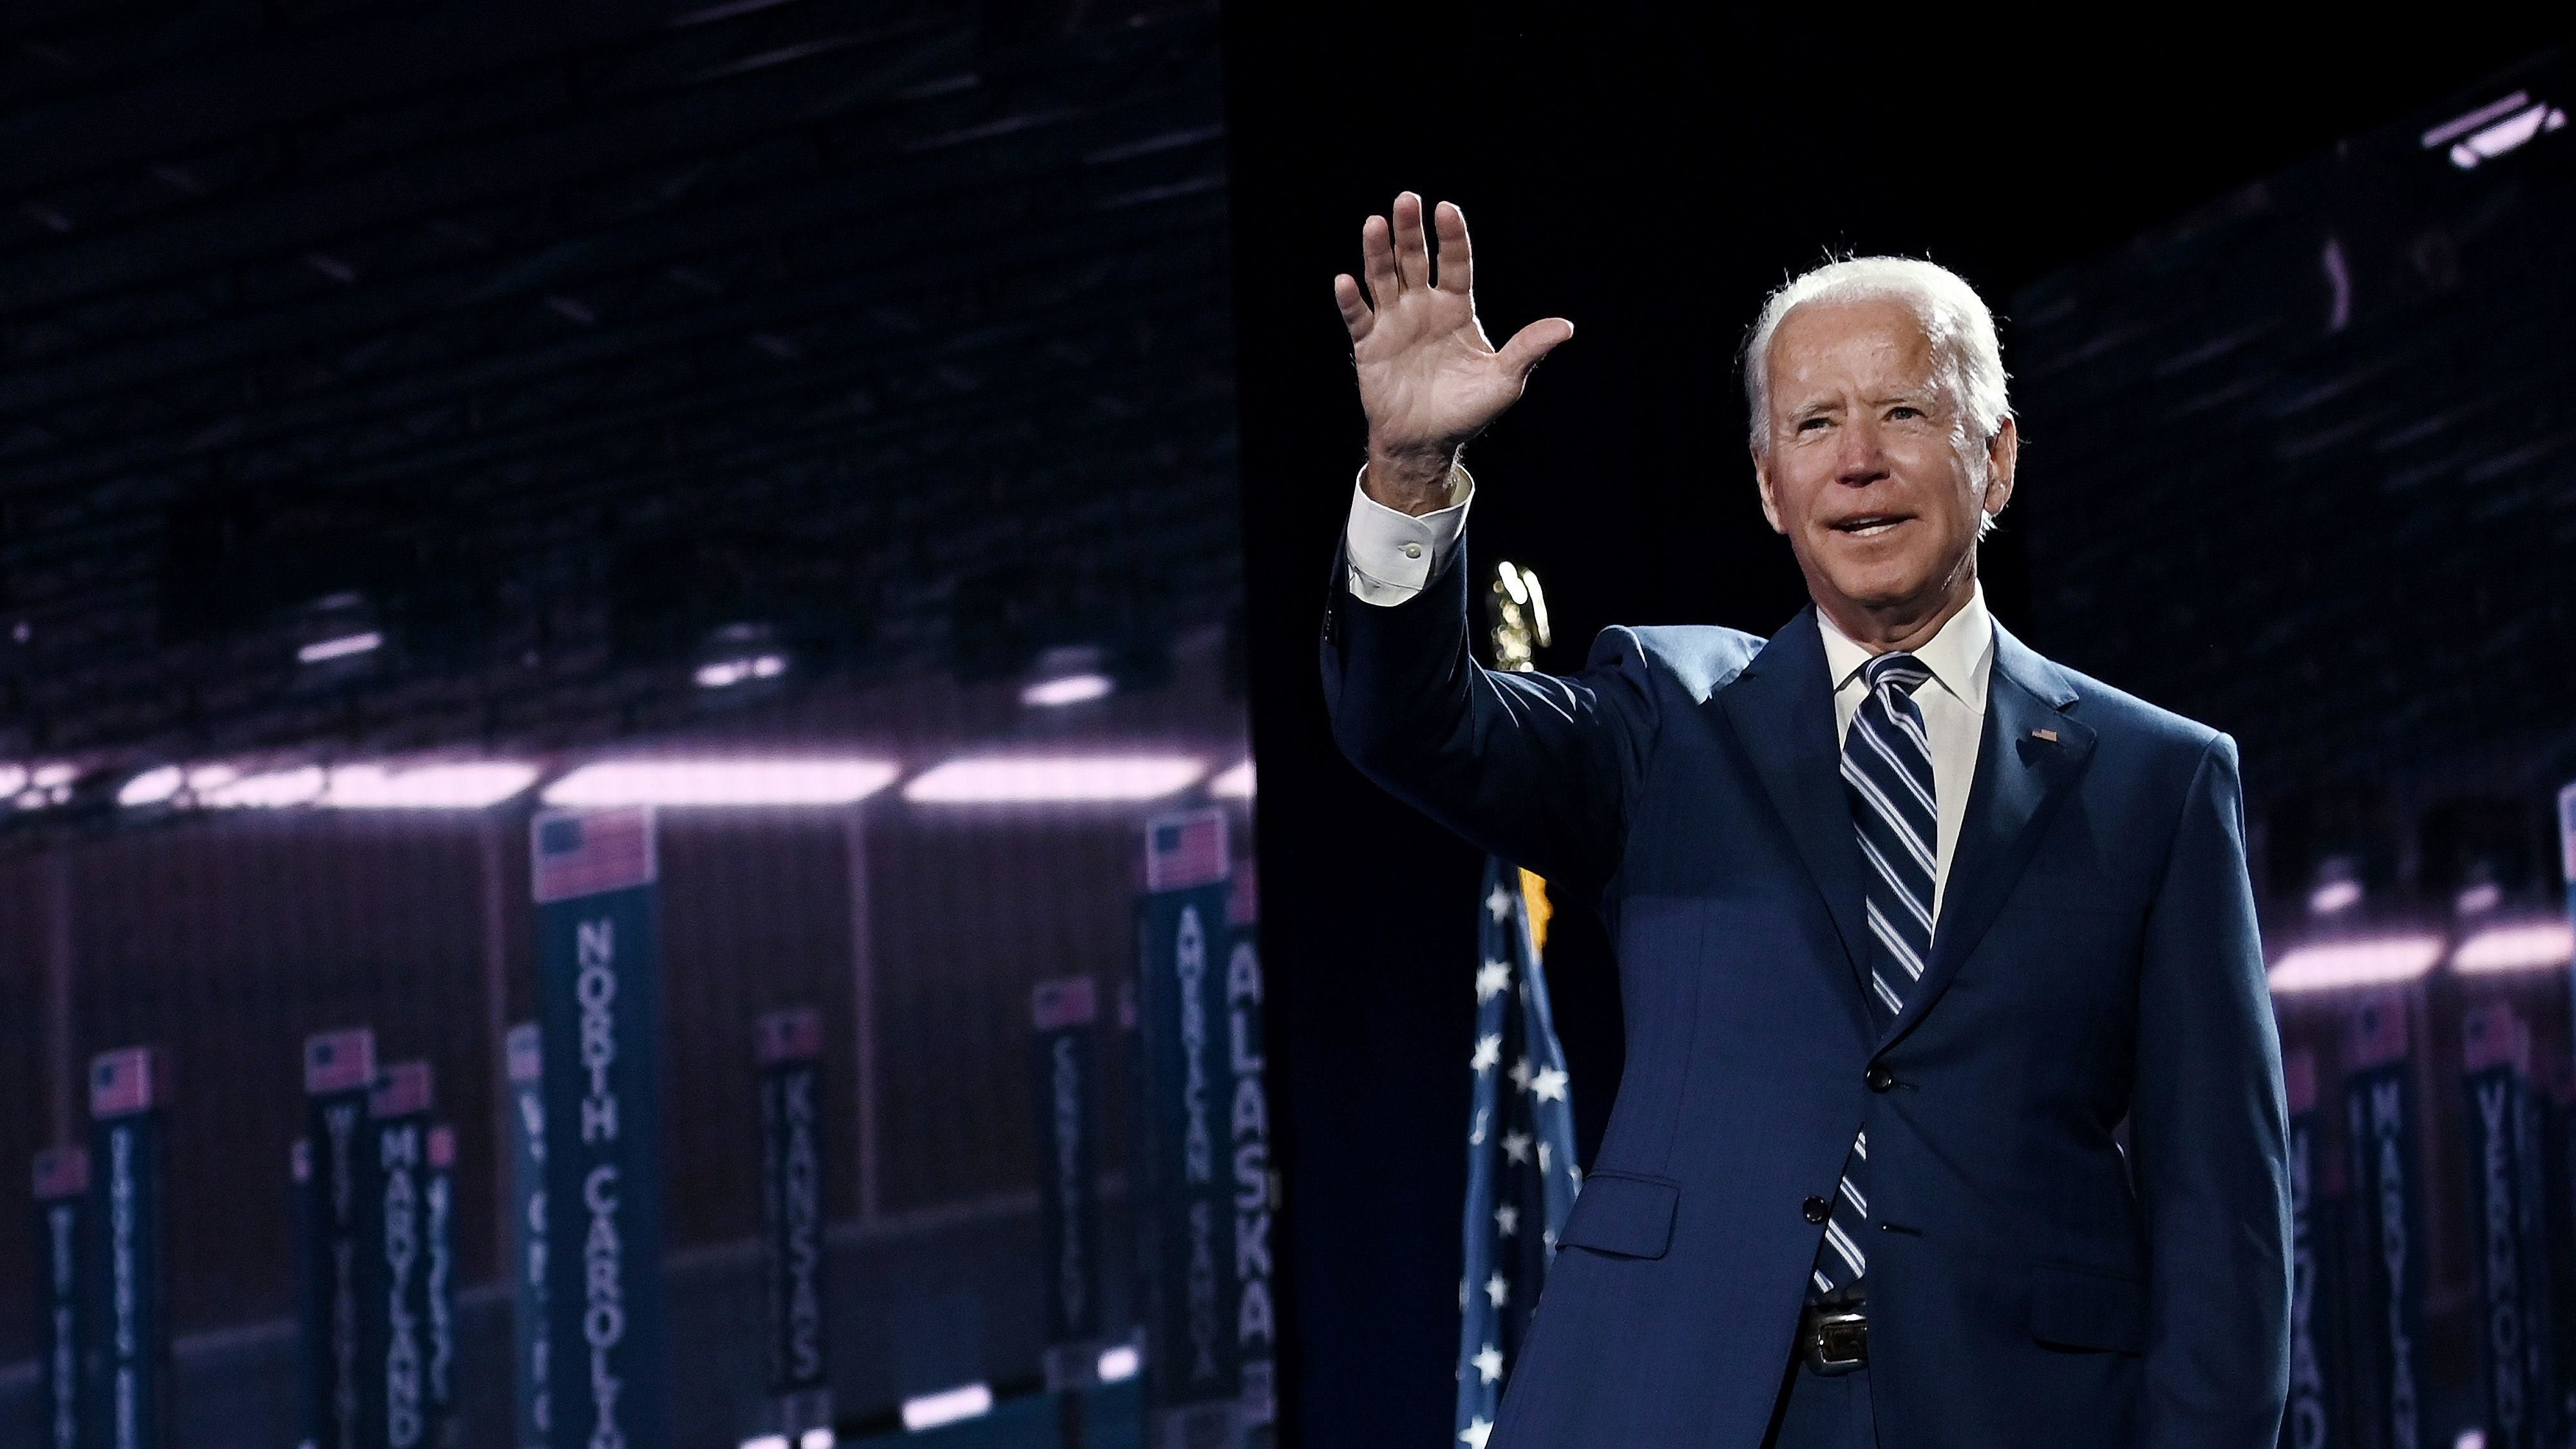 The Wealthy Are The Centerpiece Of Biden S Tax Plan Kpmg S Principal In Charge A vision for nottingham : https money yahoo com video wealthy centerpiece bidens tax plan 152945890 html